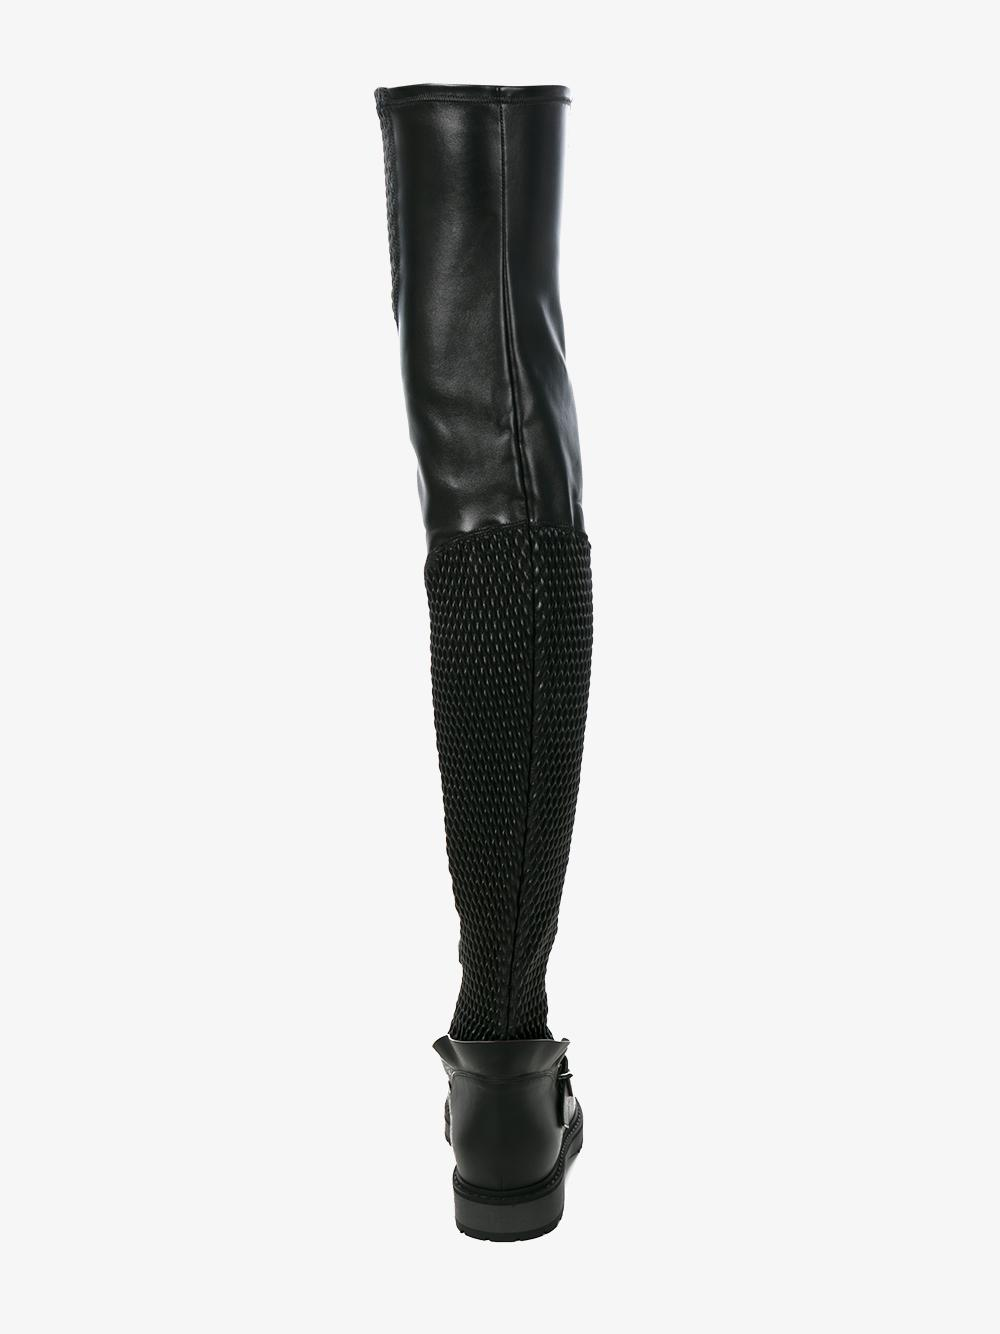 Fendi Over The Knee Leather Biker Boots in Black